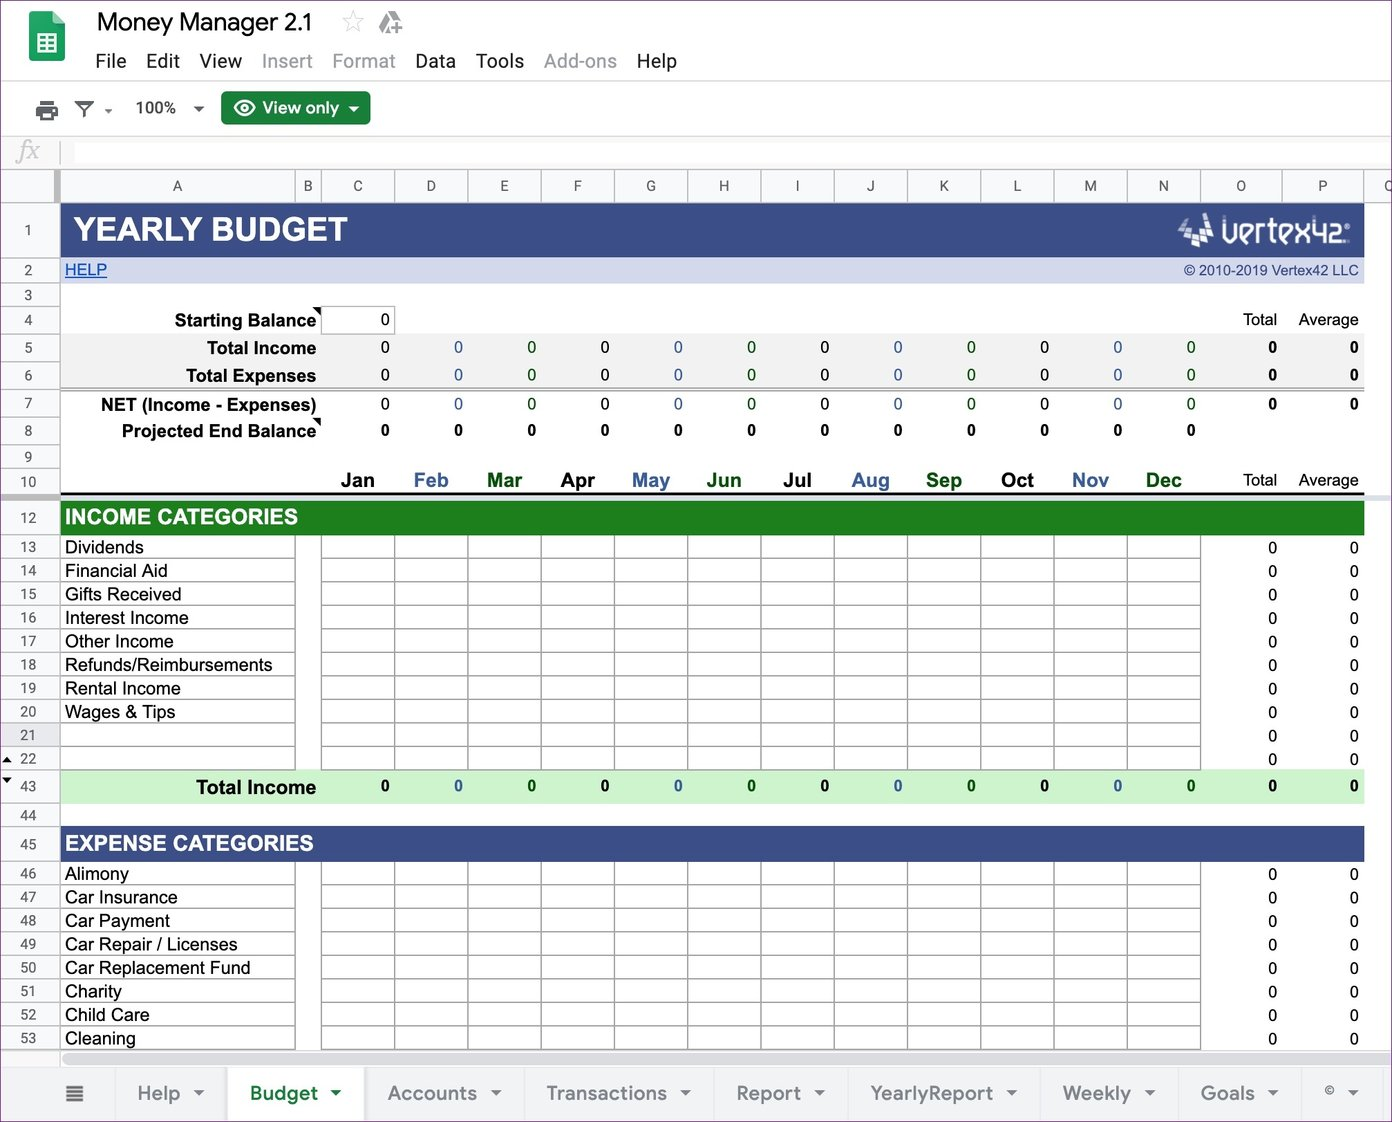 Full Size of Top Google Sheets Budget Templates For Finance Tracking Monthly Template Money Manager Spreadsheet